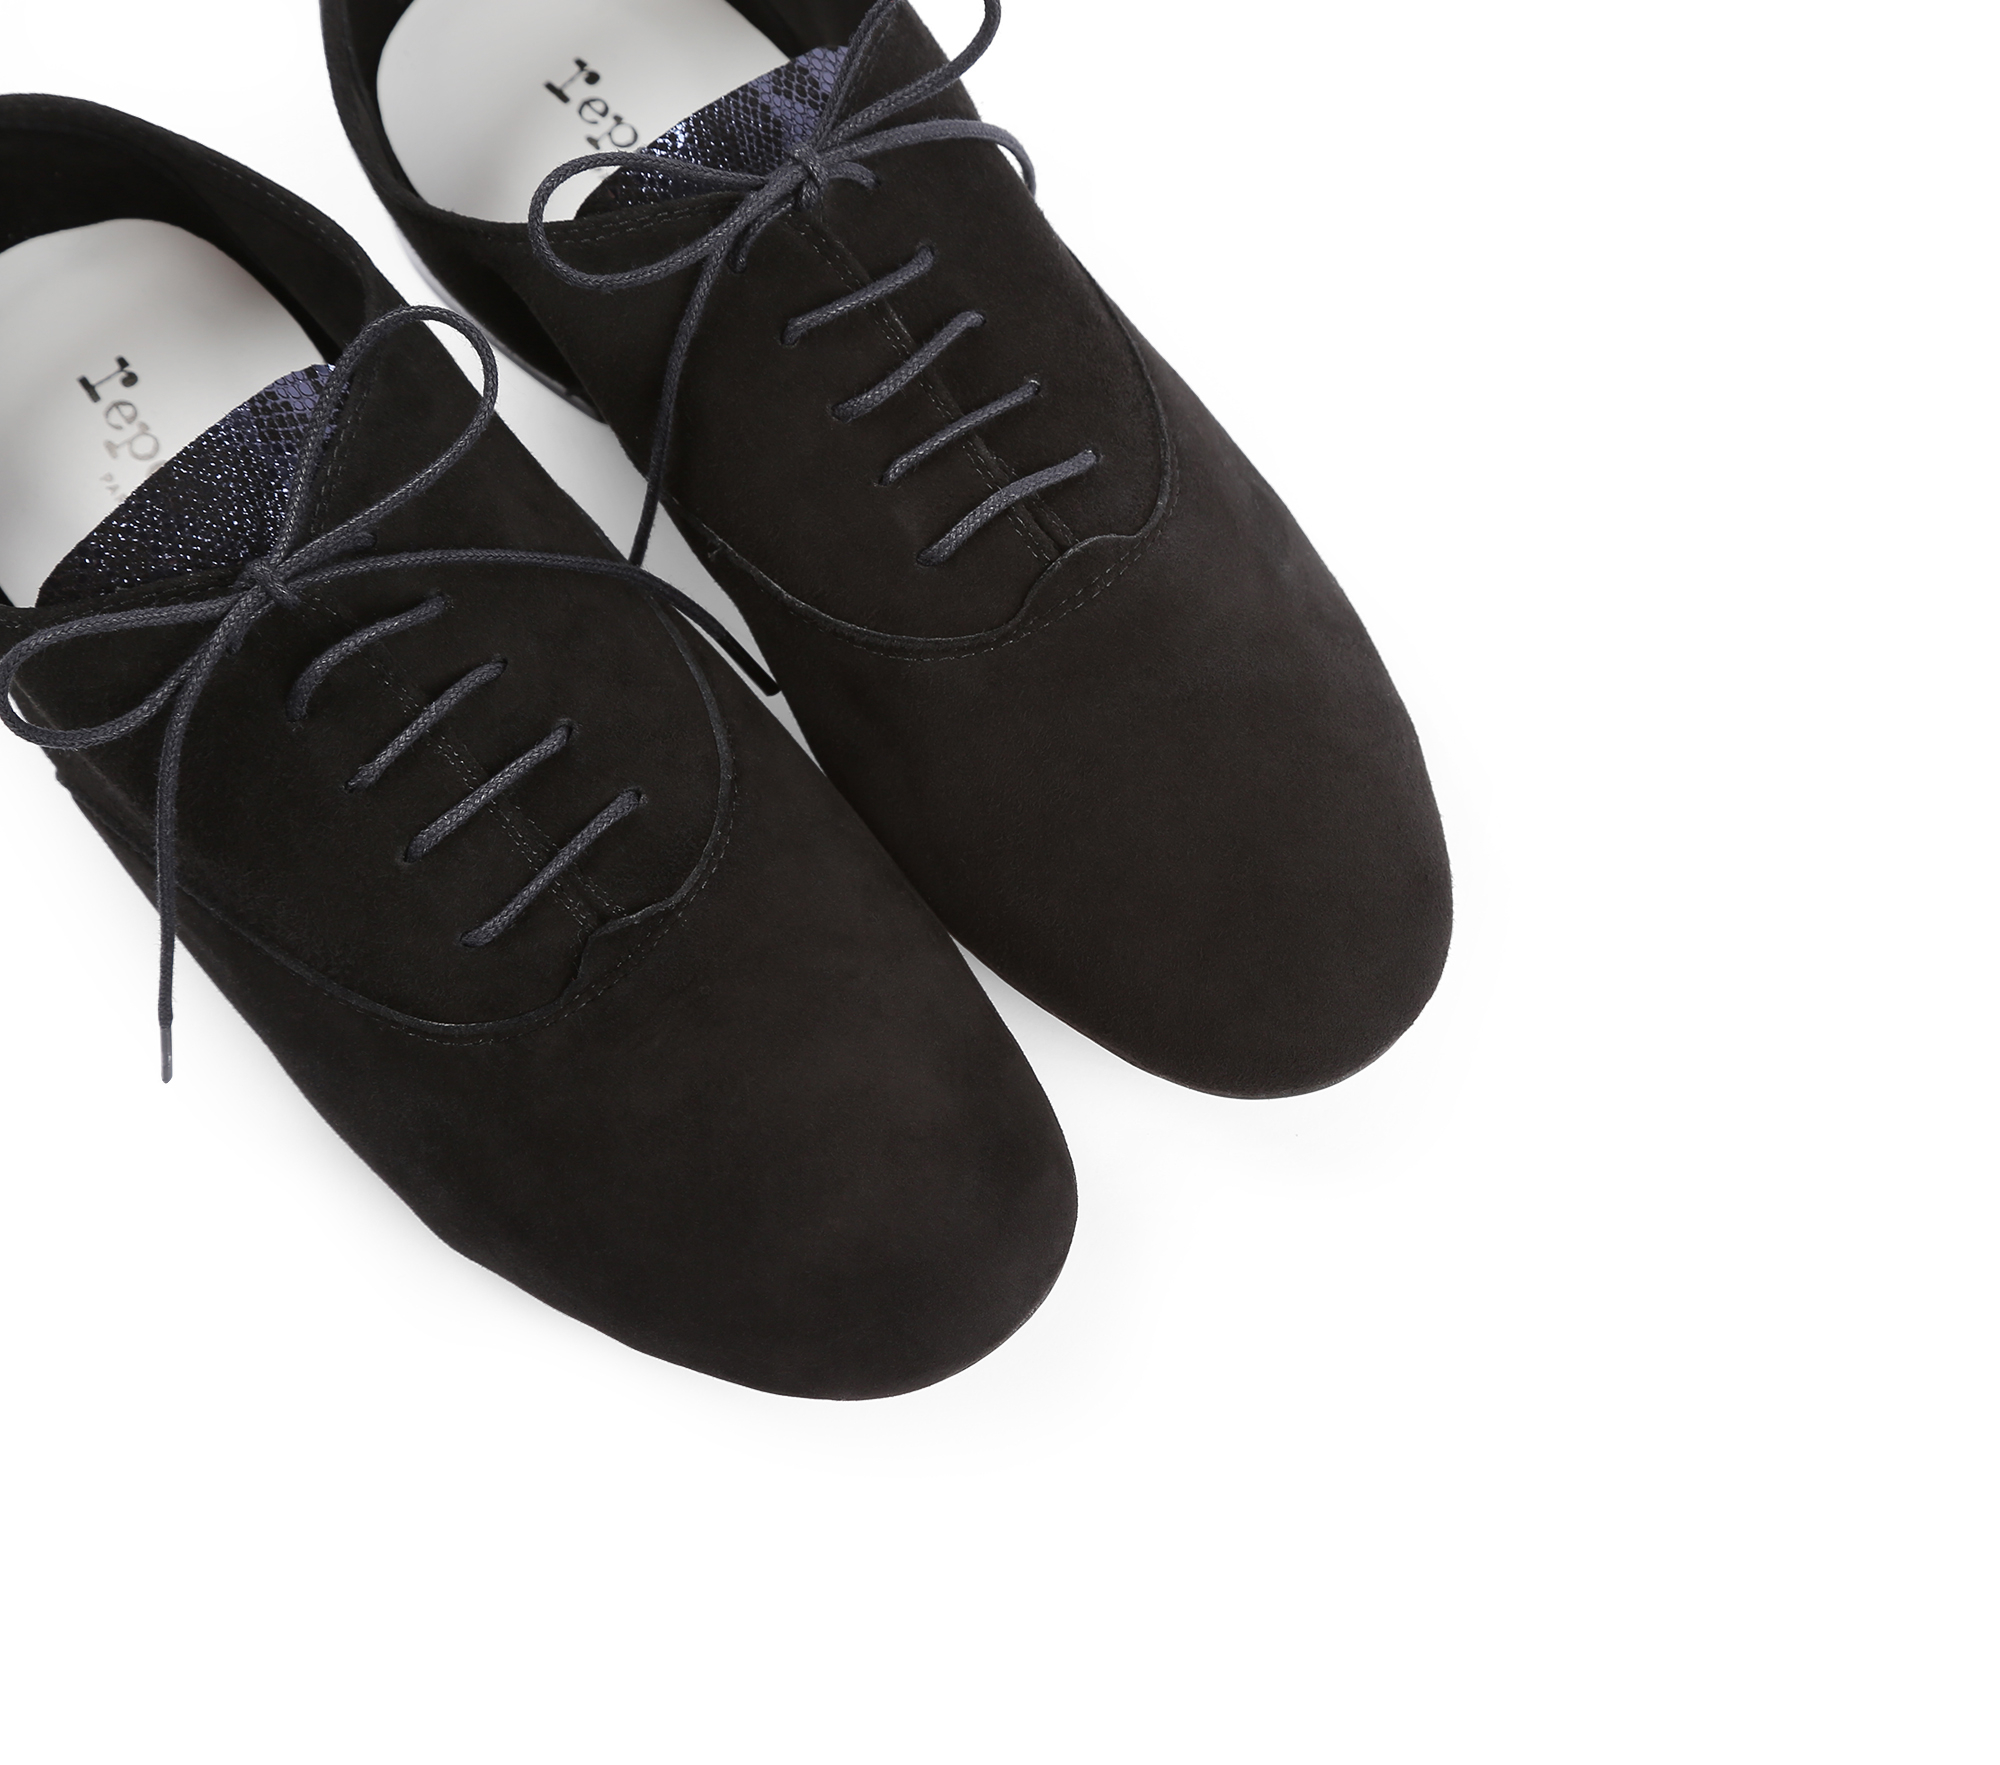 Zizi oxford shoes - Men